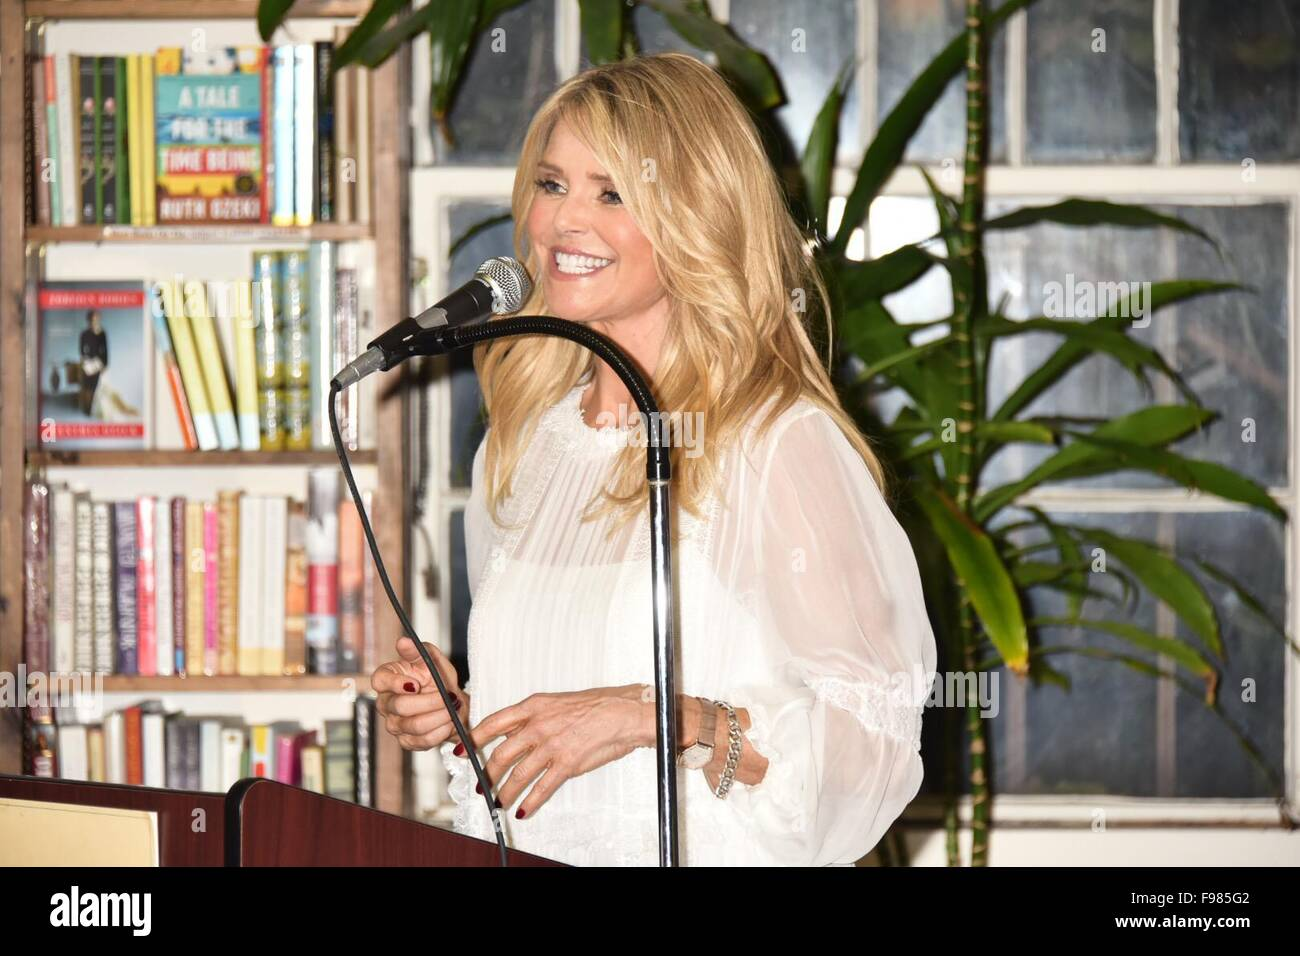 Christie Brinkley signs copies of her new book 'Timeless Beauty' at Book Revue in Huntington  Featuring: Christie Brinkley Where: Huntington, New York, United States When: 13 Nov 2015 Stock Photo